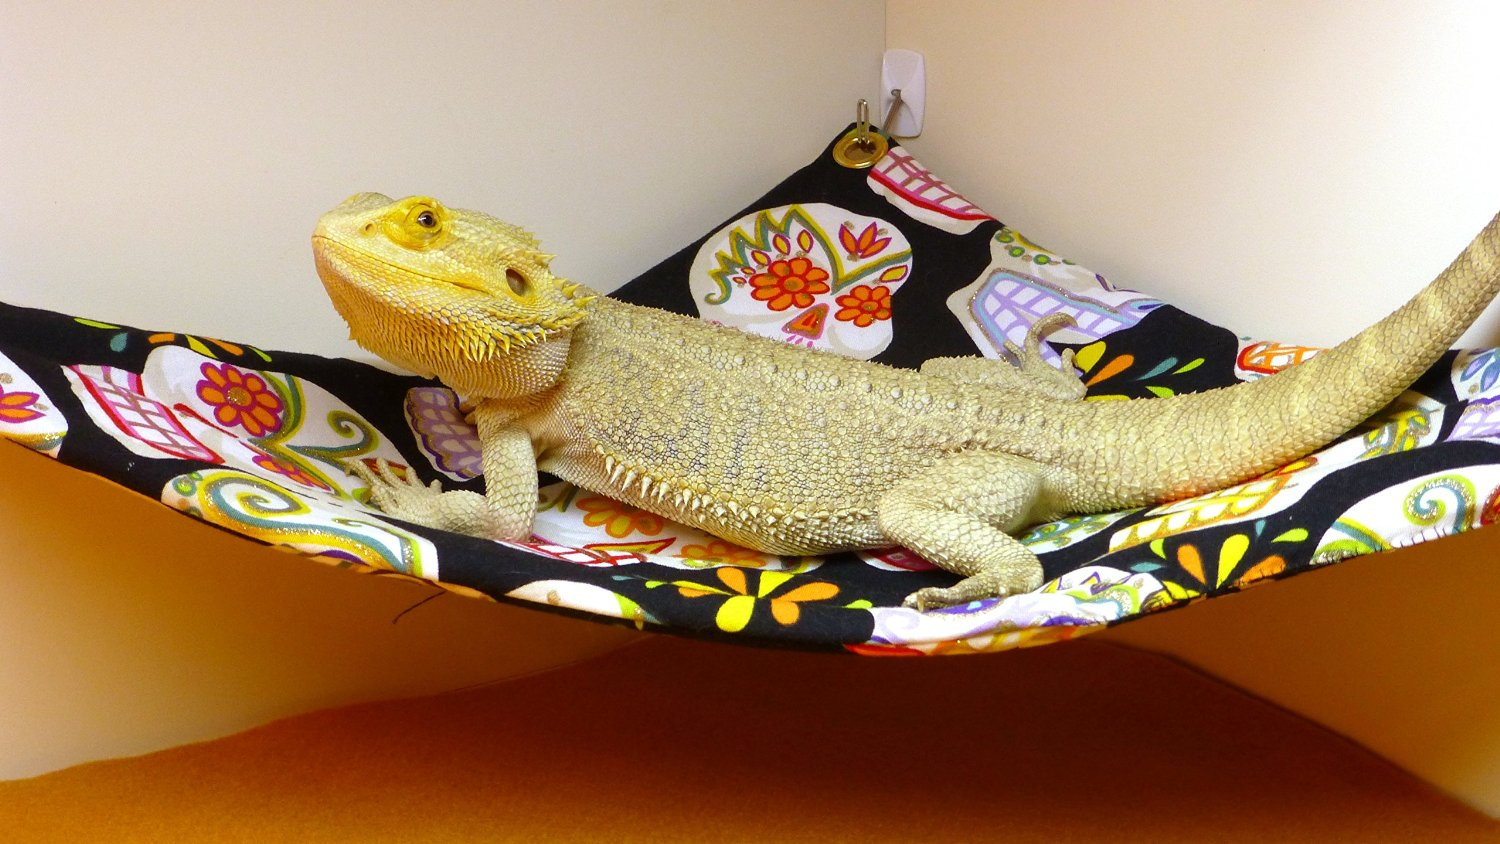 hammock     carolina designer dragons hammock for bearded dragons sugar      rh   carolinadesignerdragons